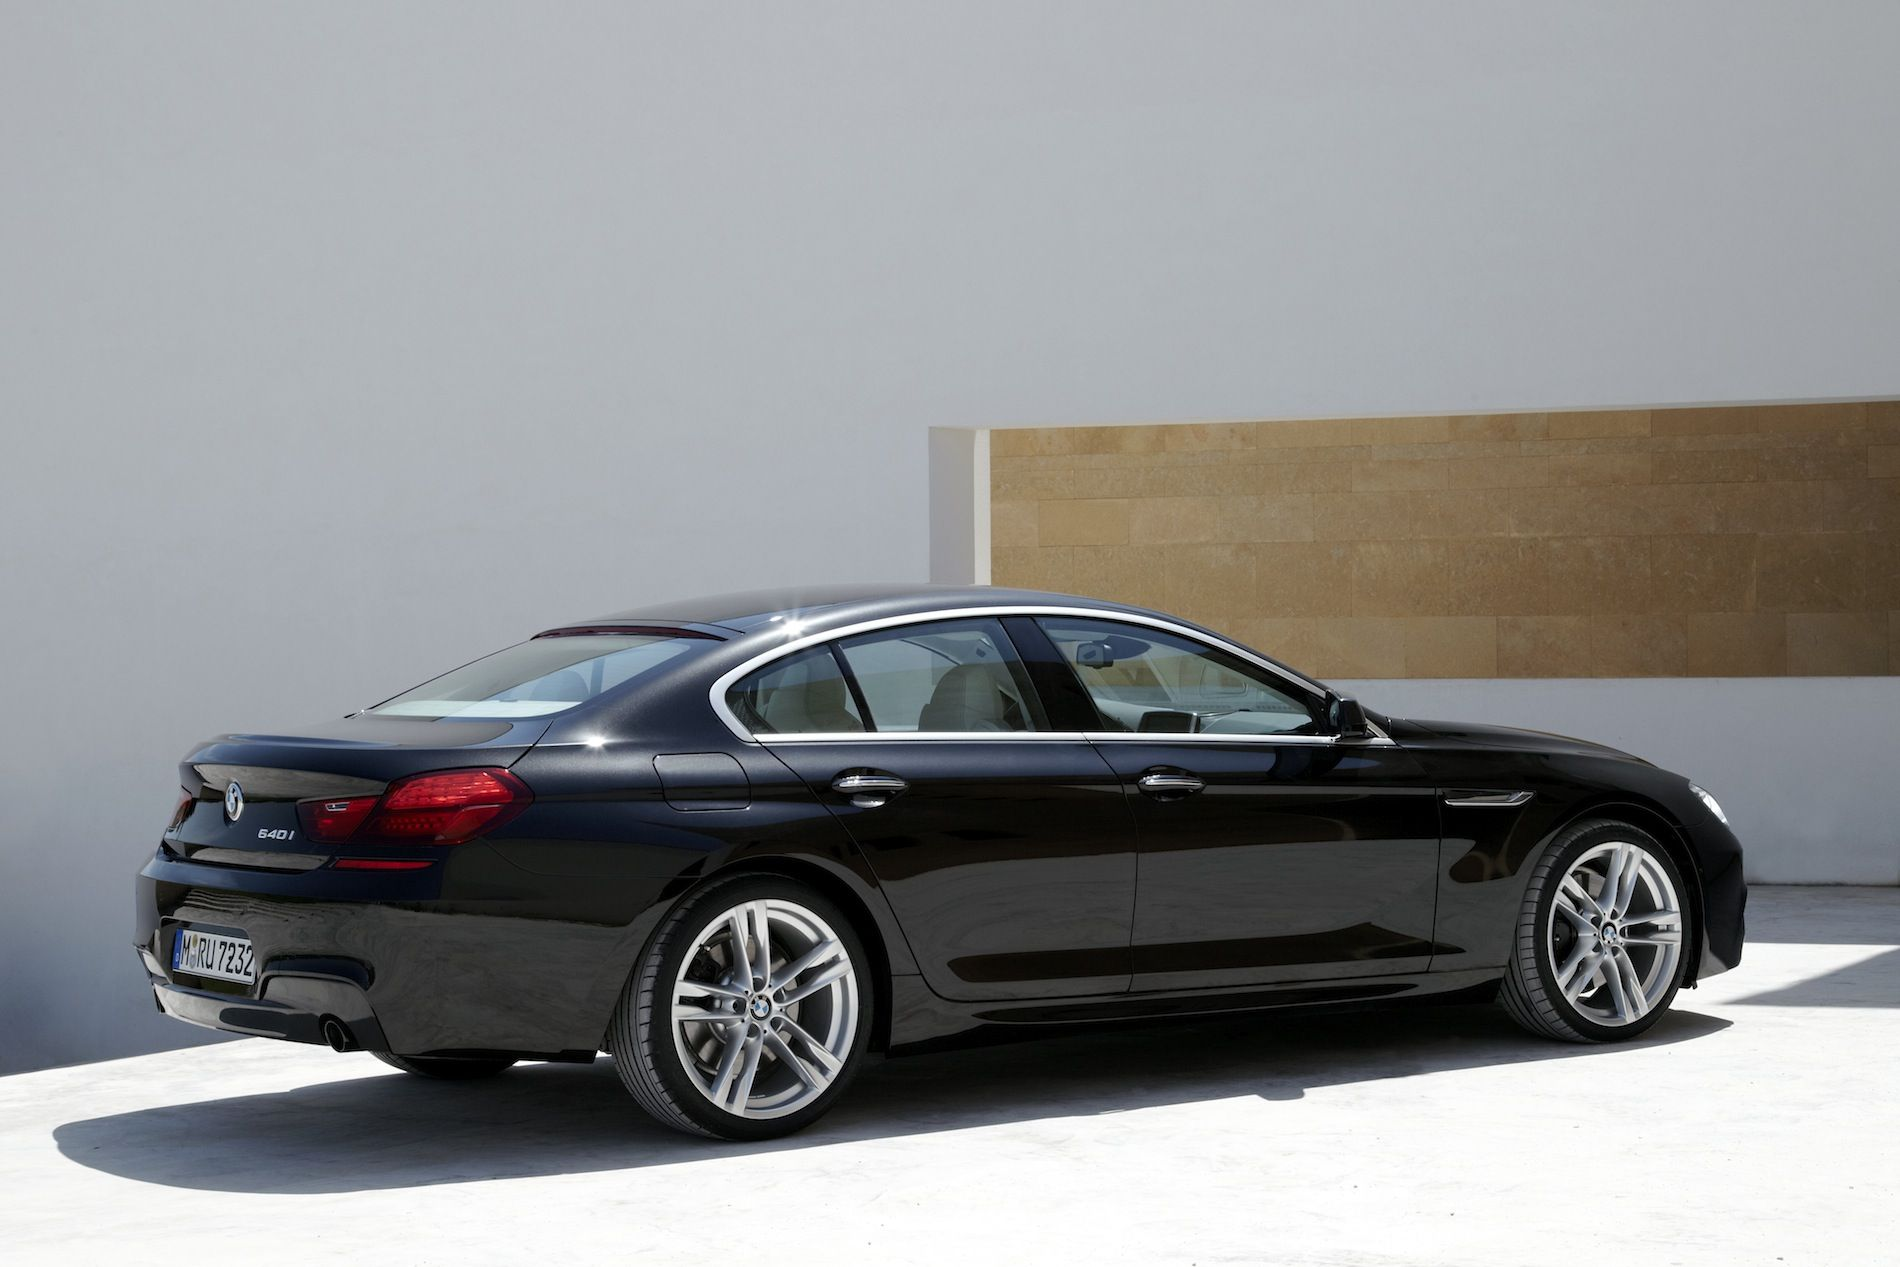 3e5a8fe8bd463ae9ba20ac71809a88f1 Great Description About Bmw 650i 2015 with Fabulous Pictures Cars Review